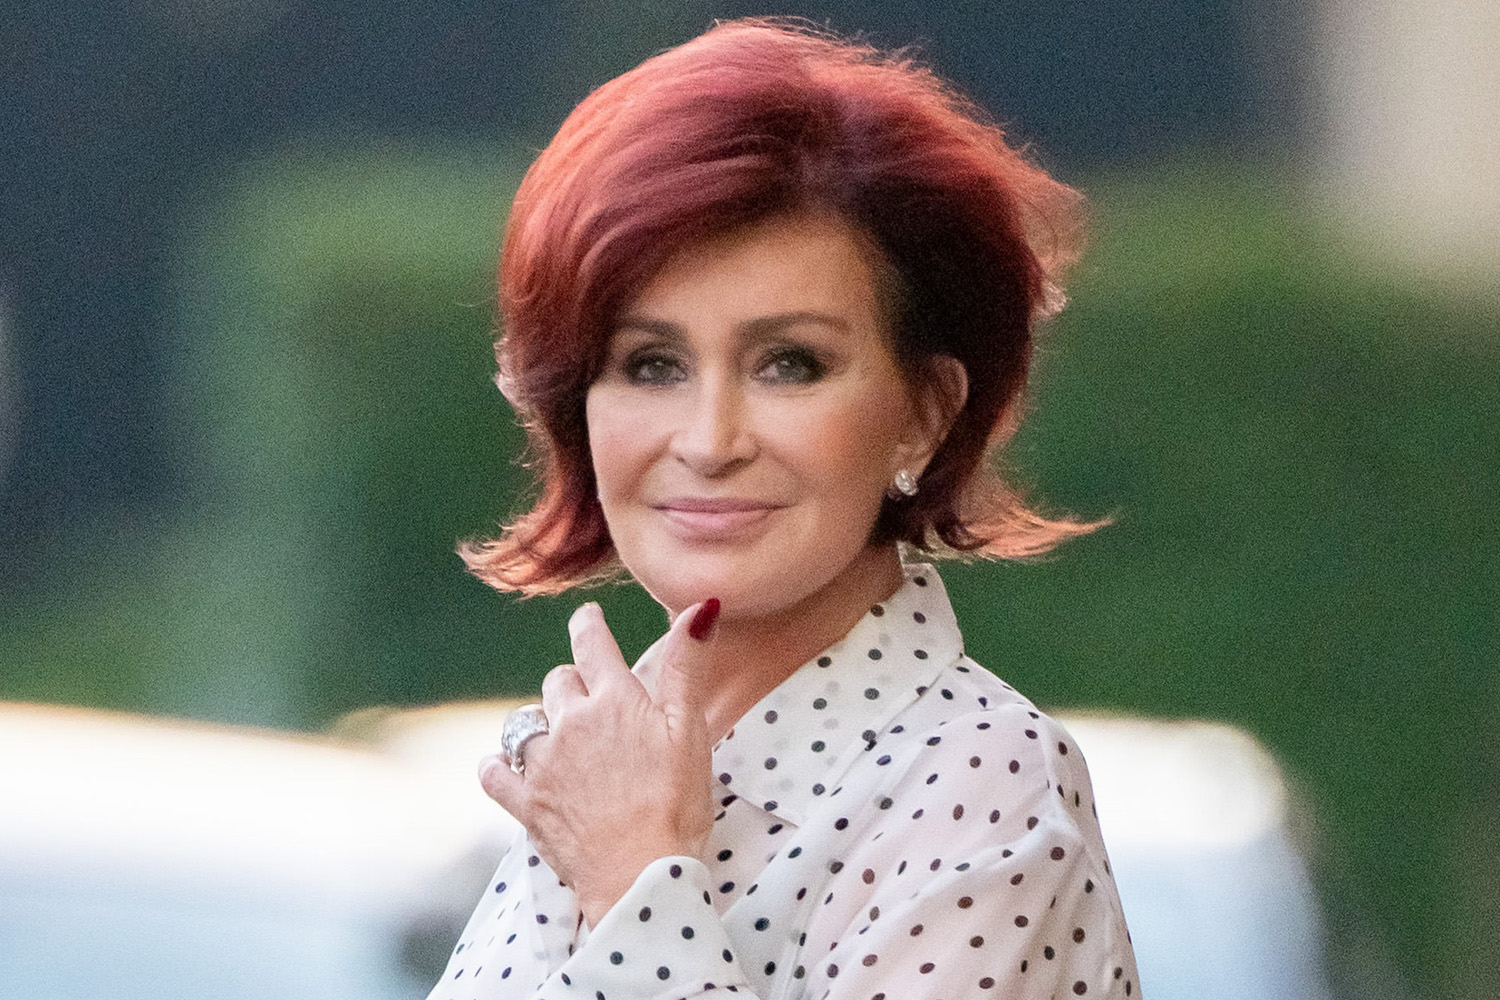 Sharon Osbourne reveals daughter was taken to hospital for emergency surgery